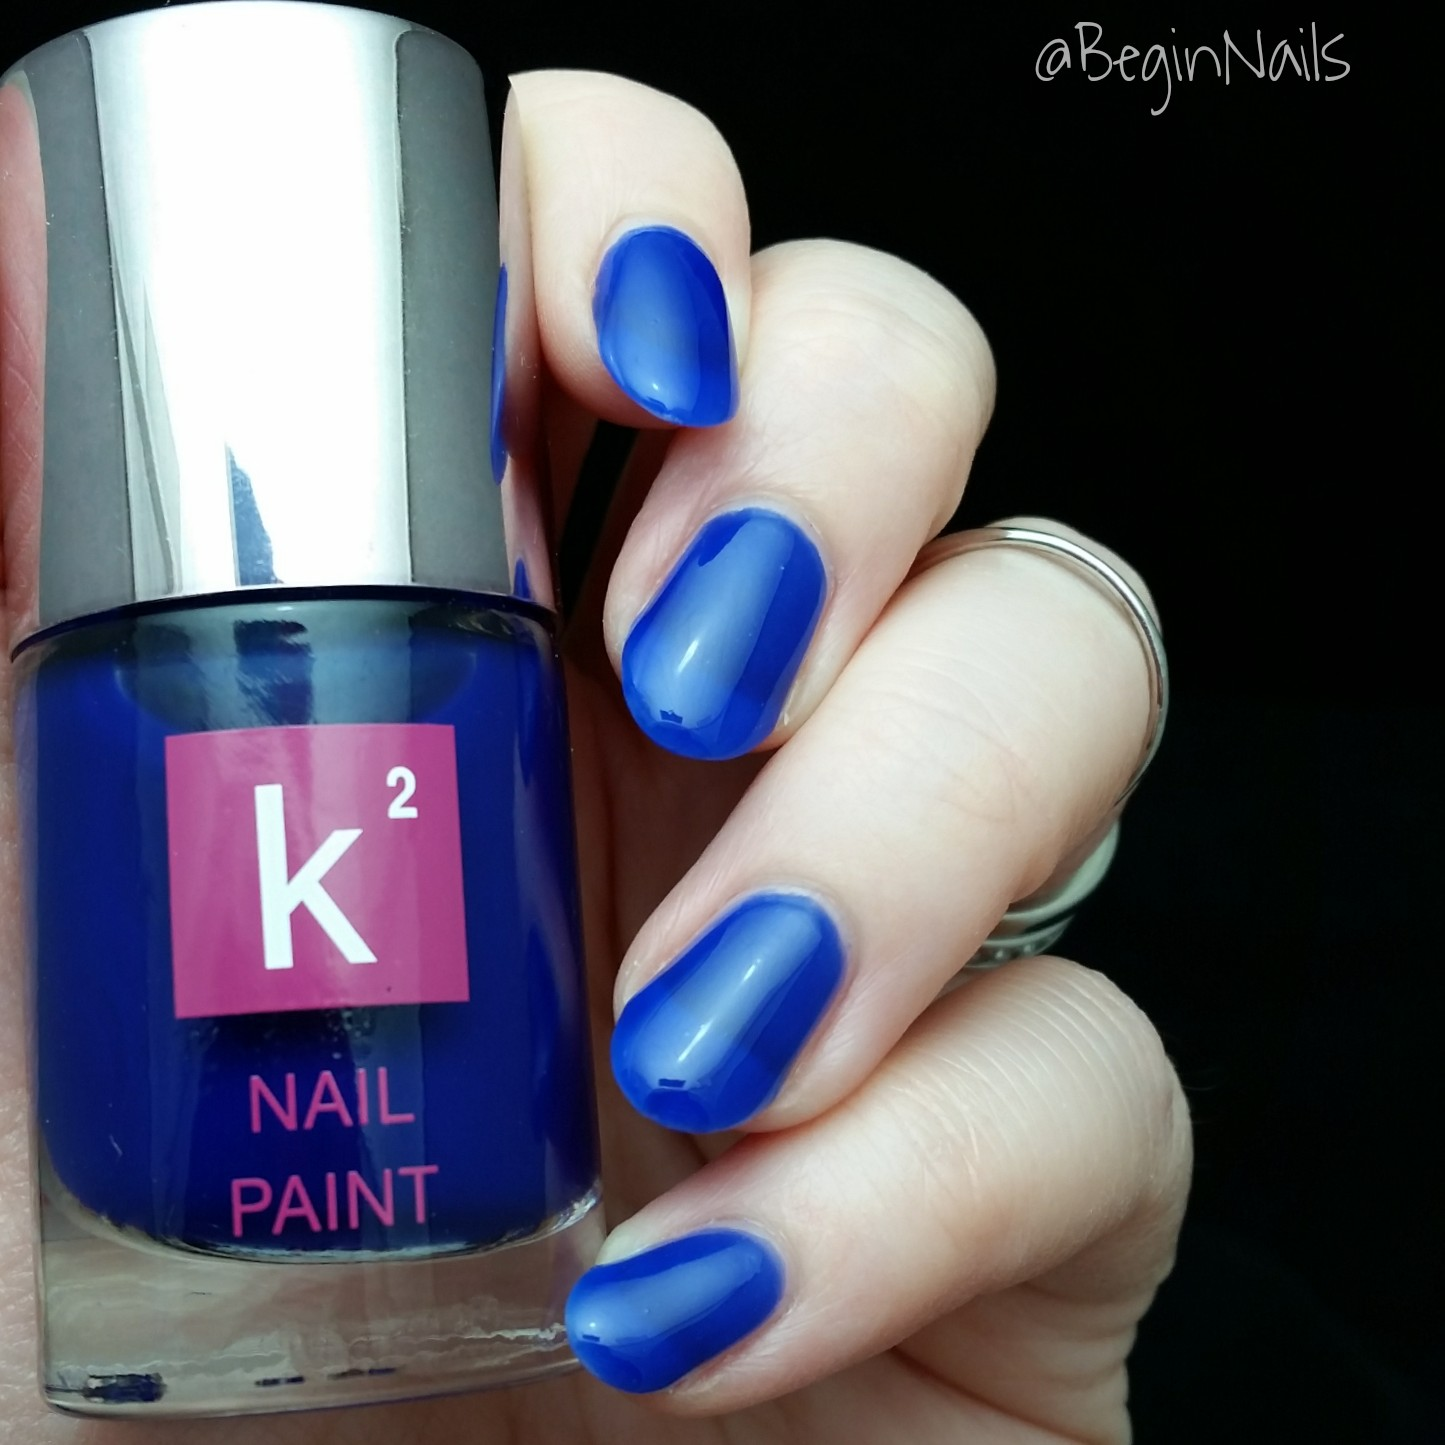 Finger Nail Paint: Let's Begin Nails: K2 Nail Paint Swatch And Review